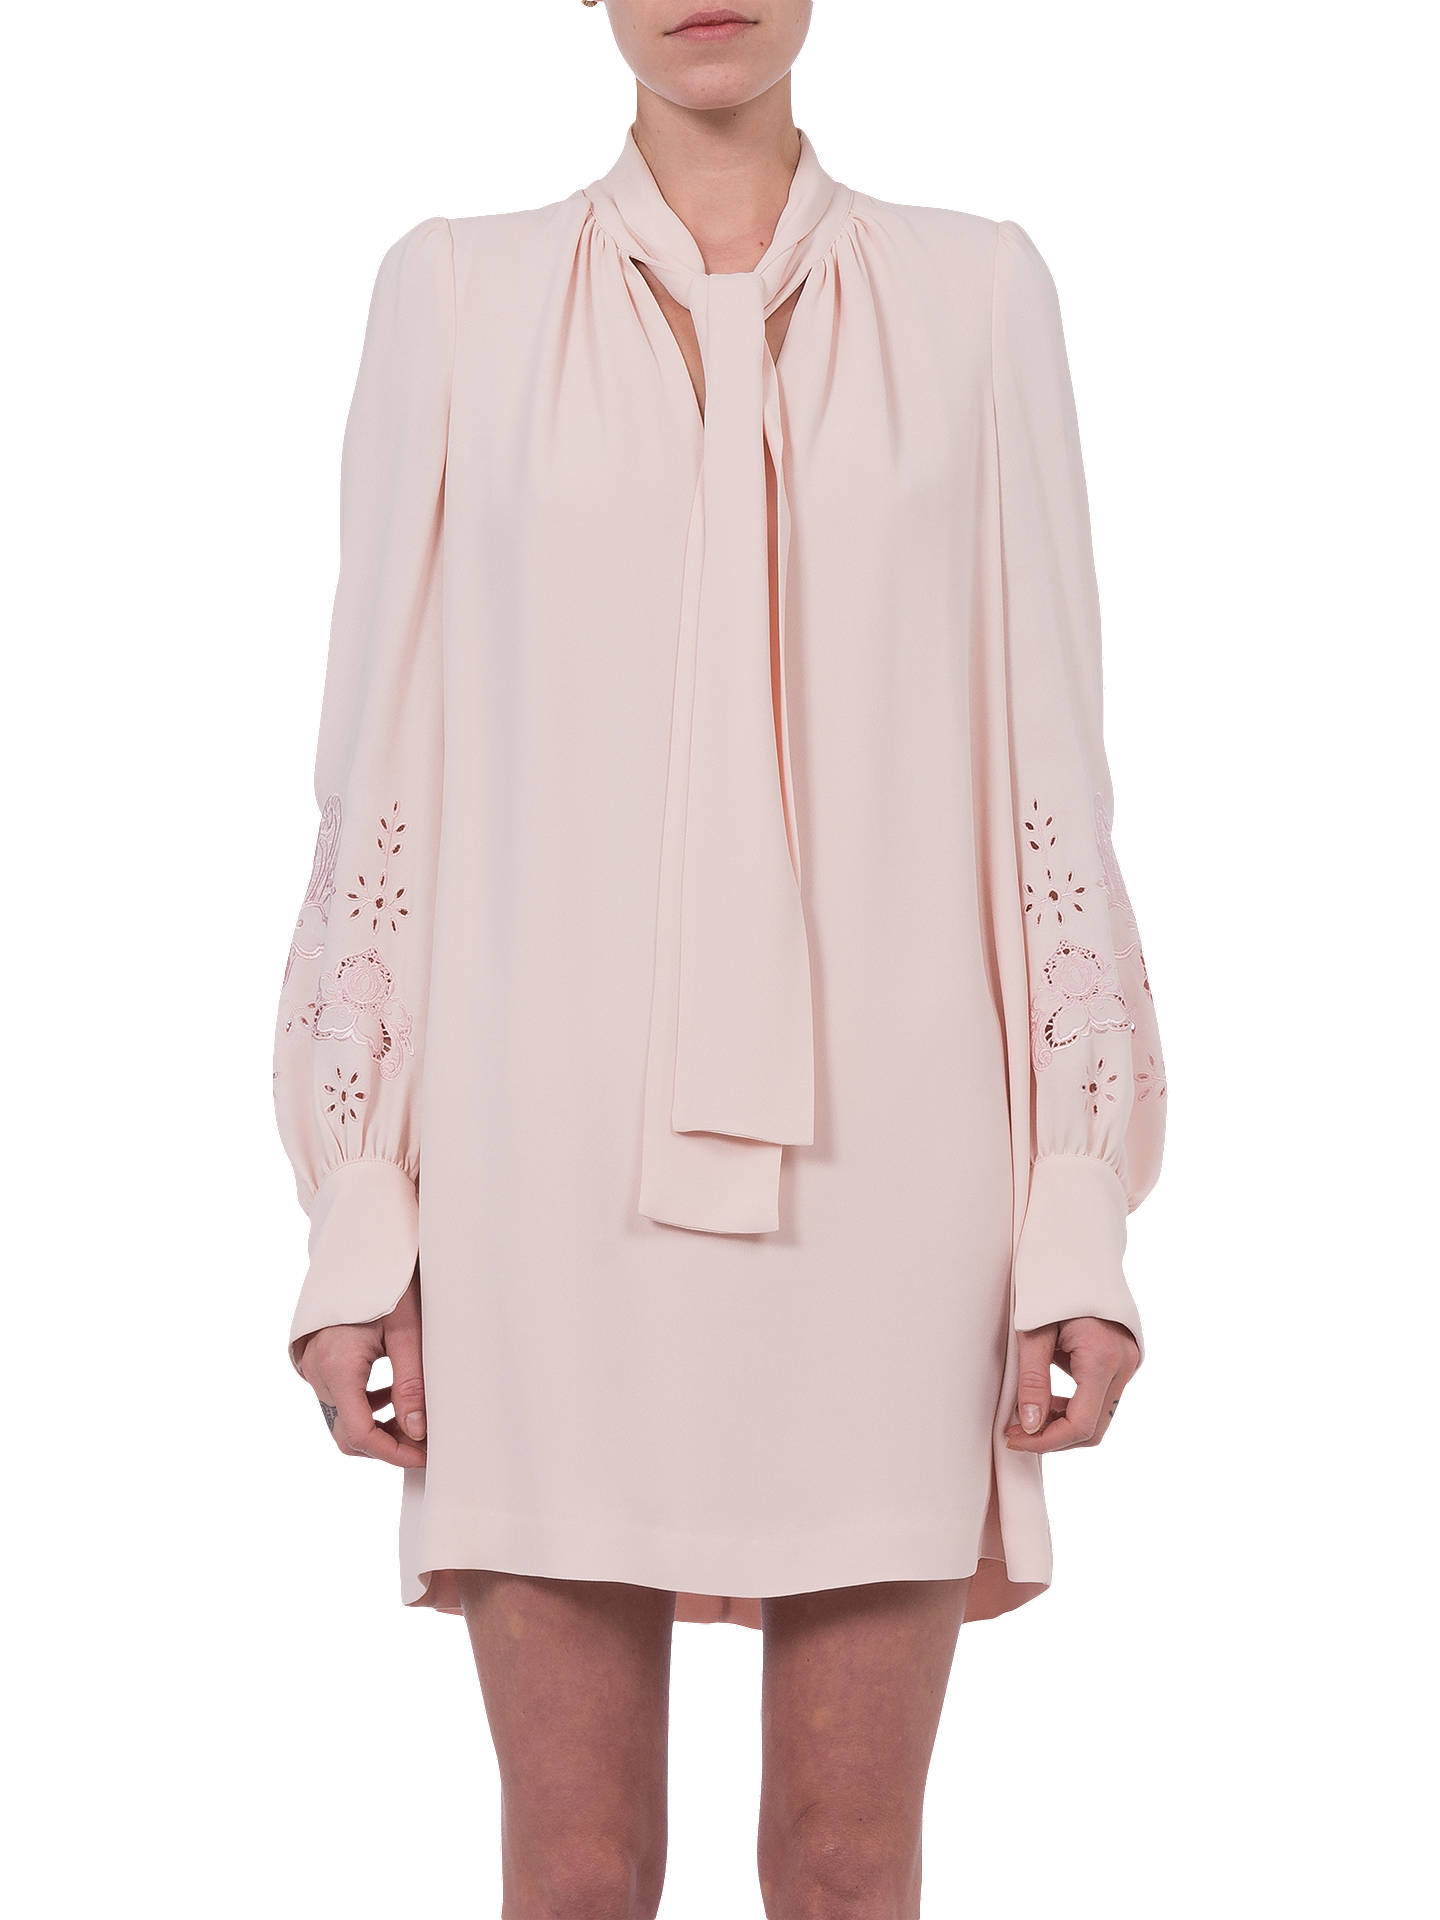 a7de6ec1d0c Buy French Connection Arimi Dress, Barley Pink, 6 Online at johnlewis.com  ...